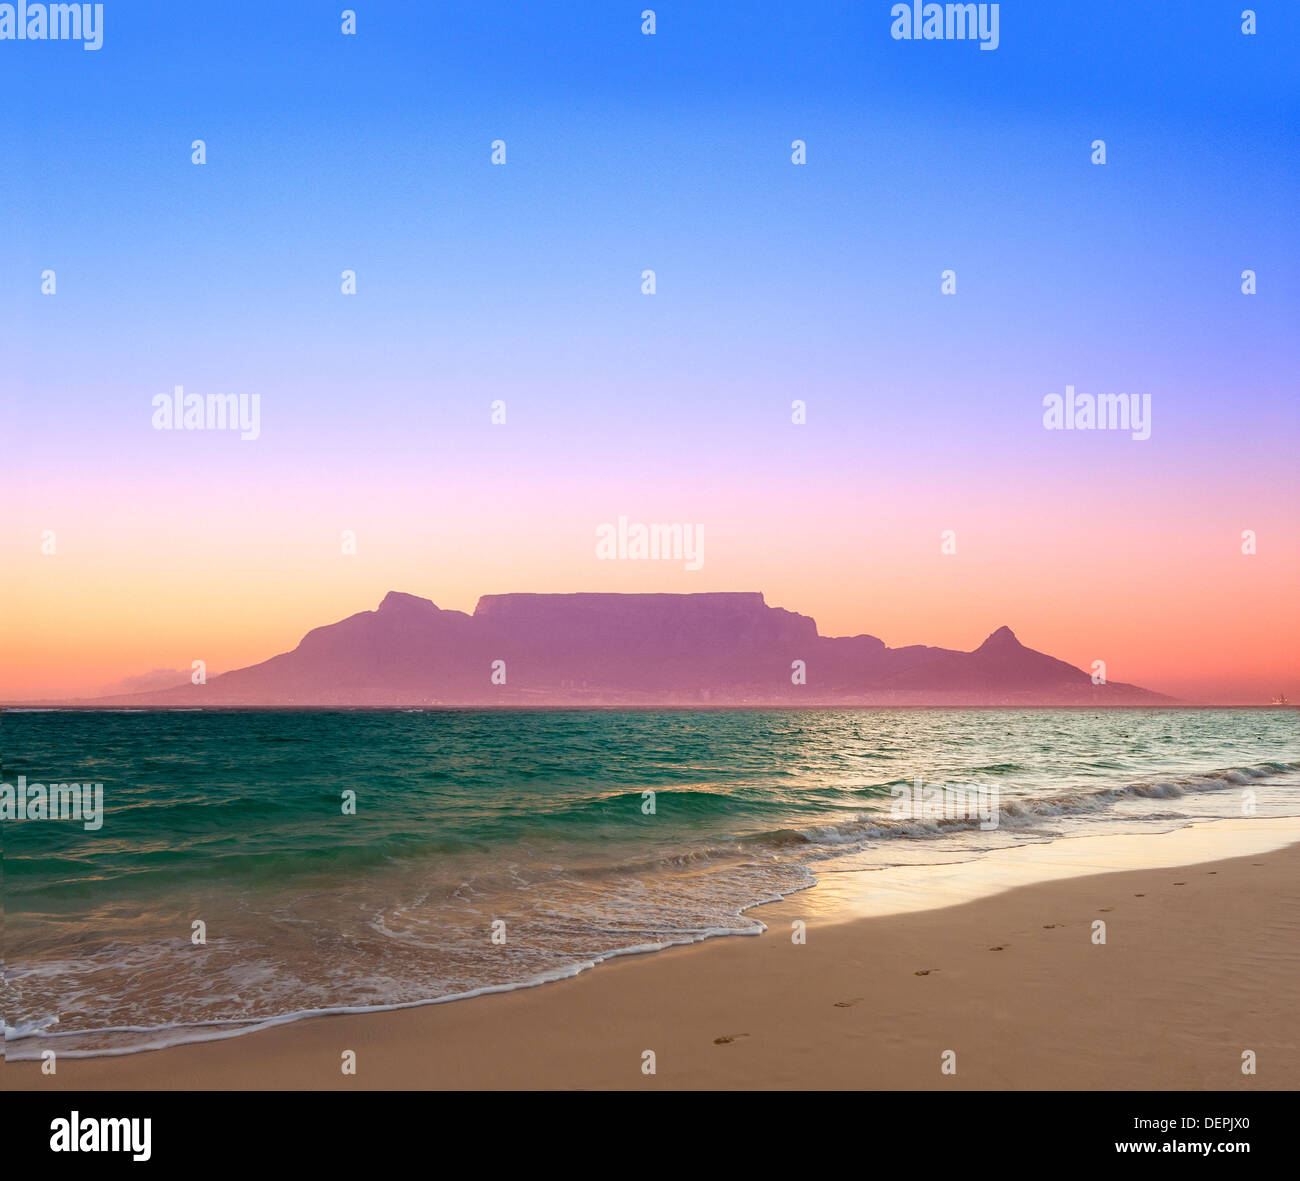 cape town from bloubergstrand at dusk sunset showing lights ocean and beach - Stock Image